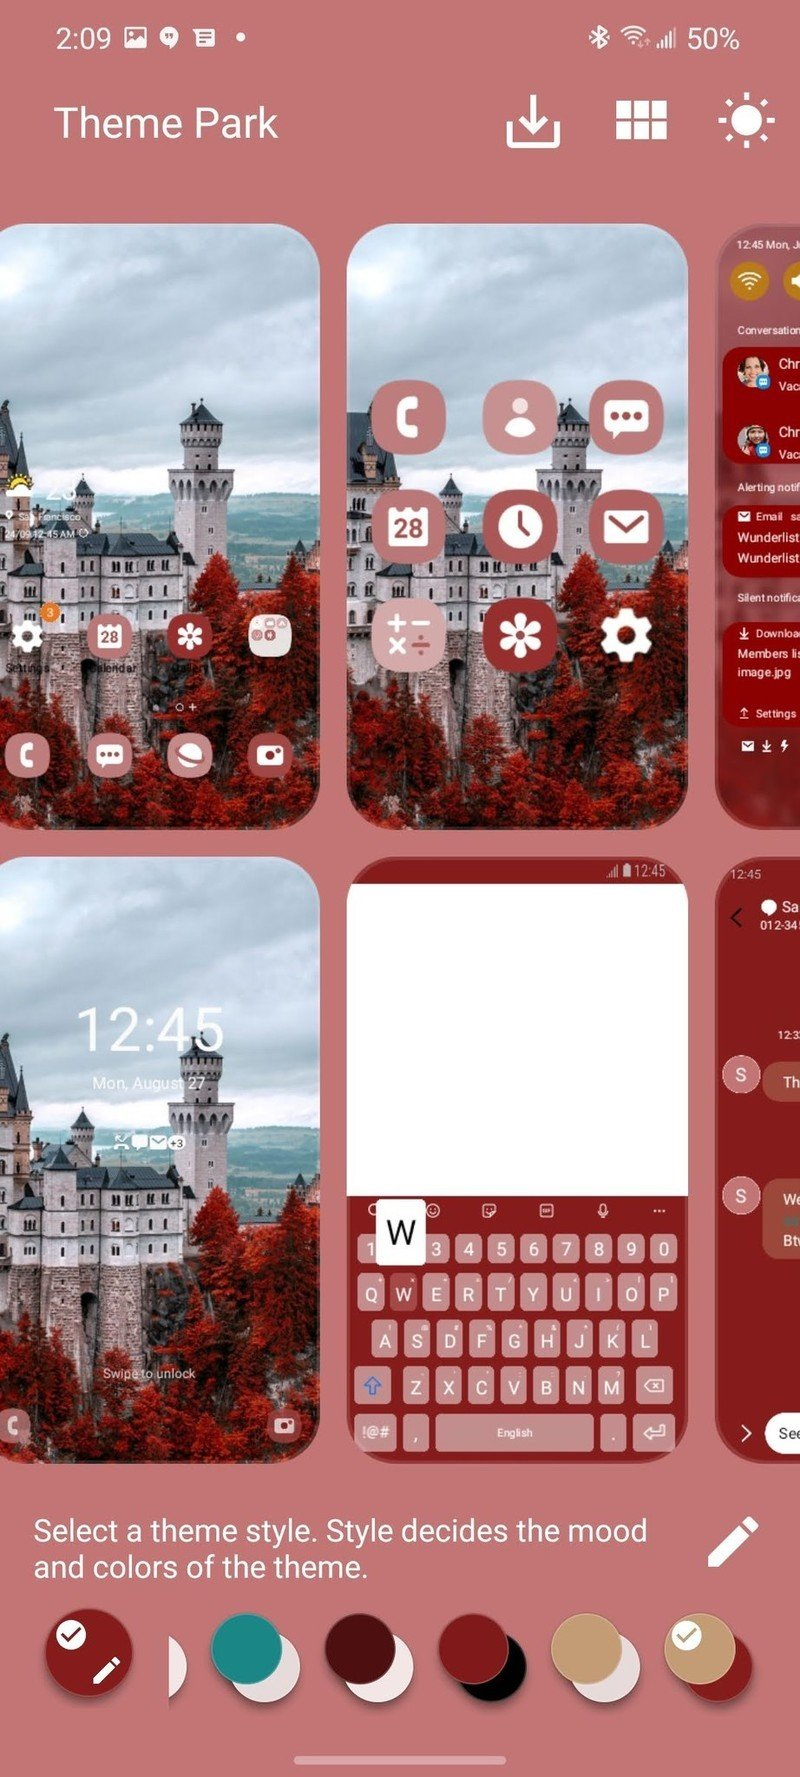 Customizing with Good Lock and Theme Park